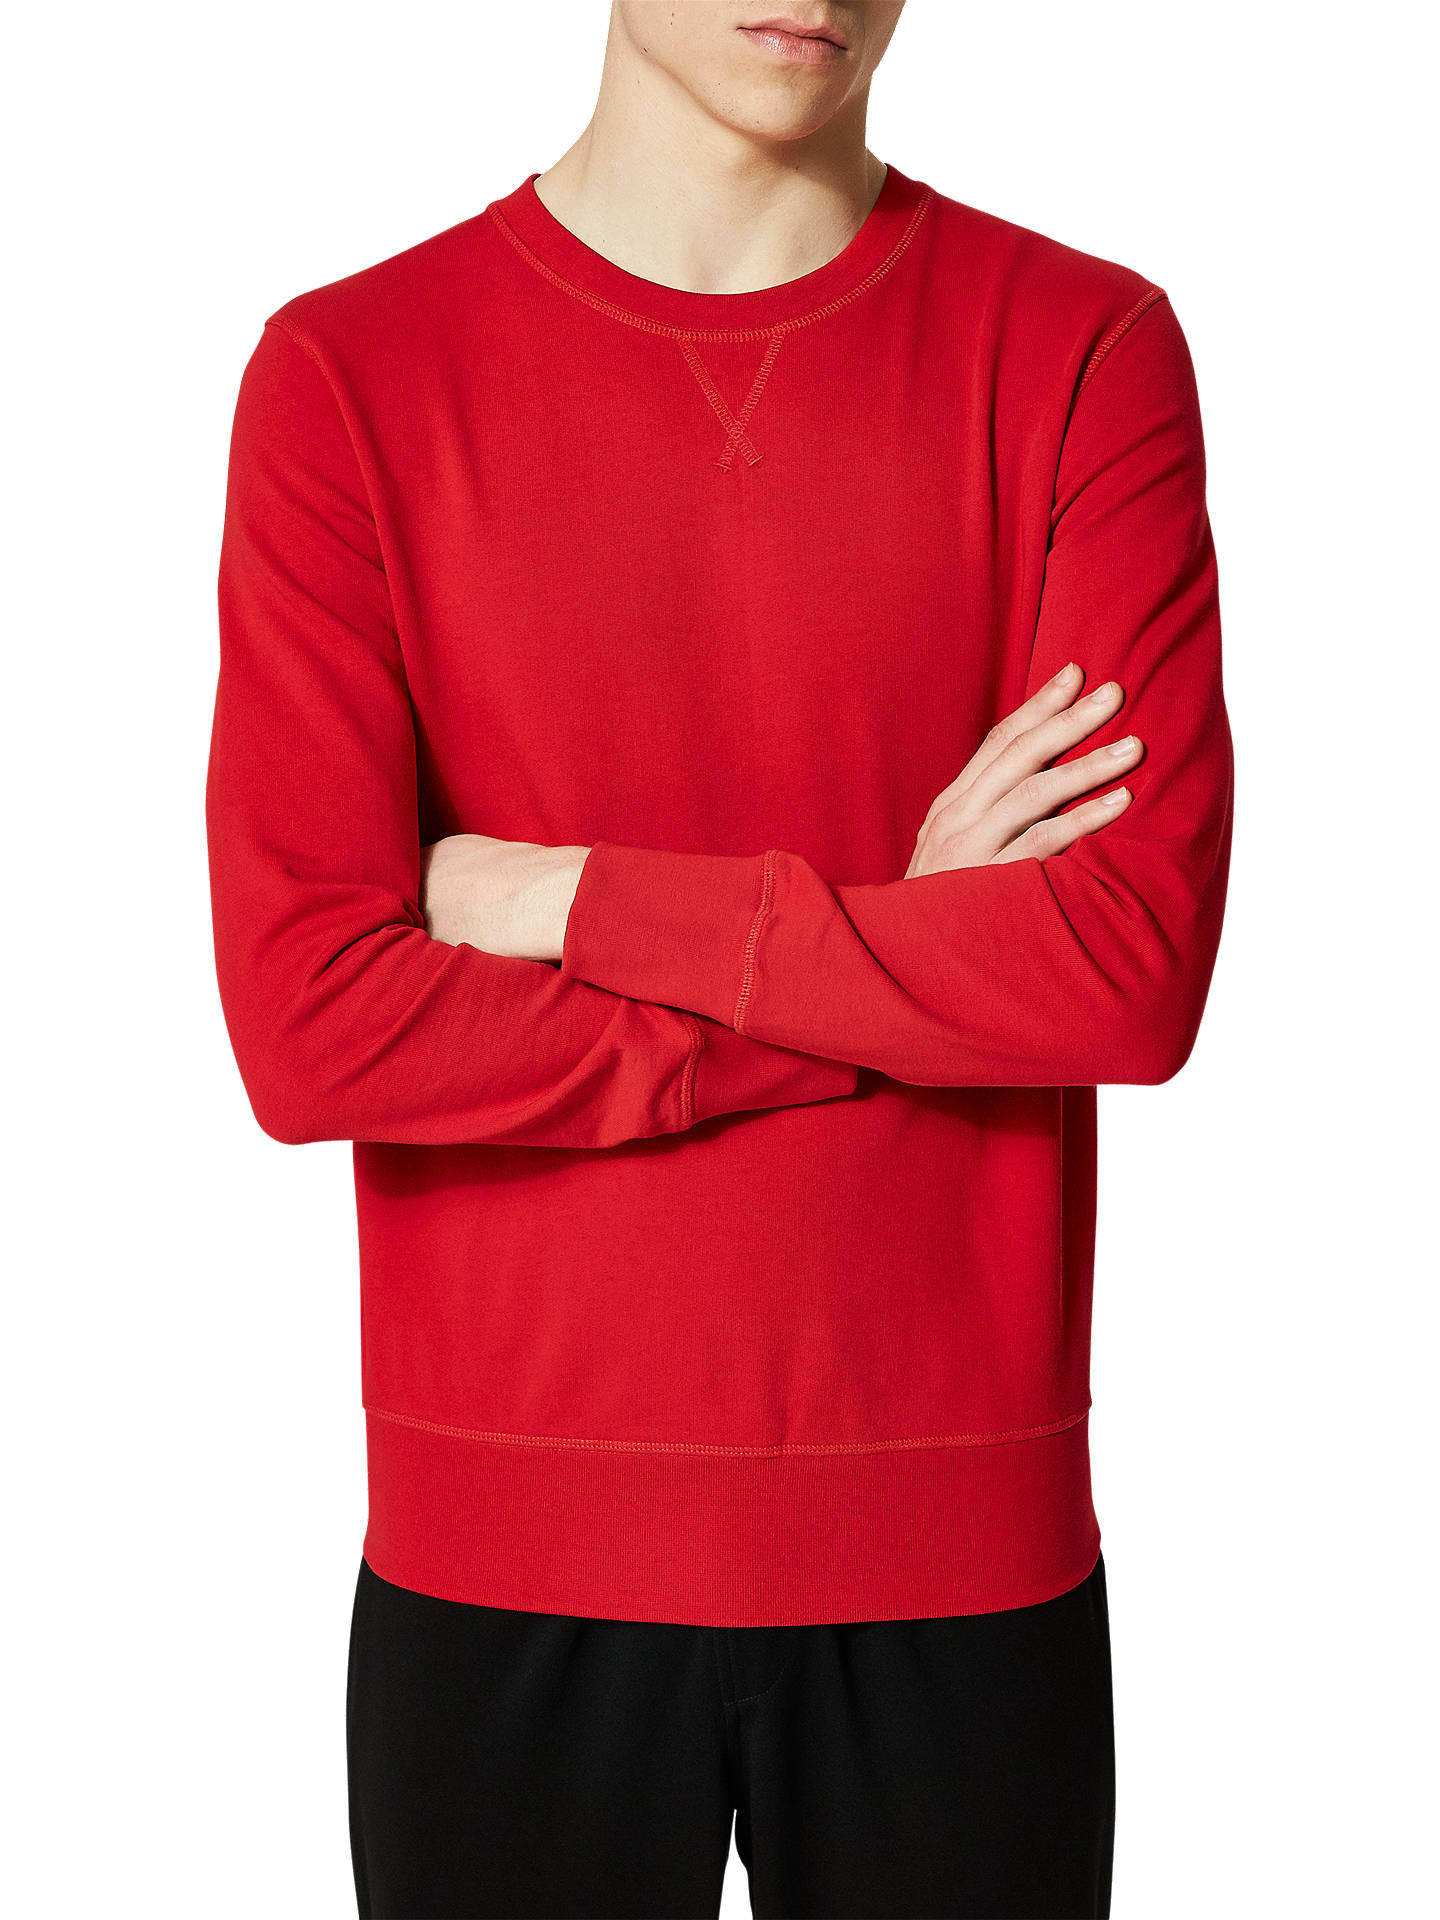 Buy Selected Homme Caleb Organic Cotton Long Sleeve Sweatshirt, Red, XL Online at johnlewis.com